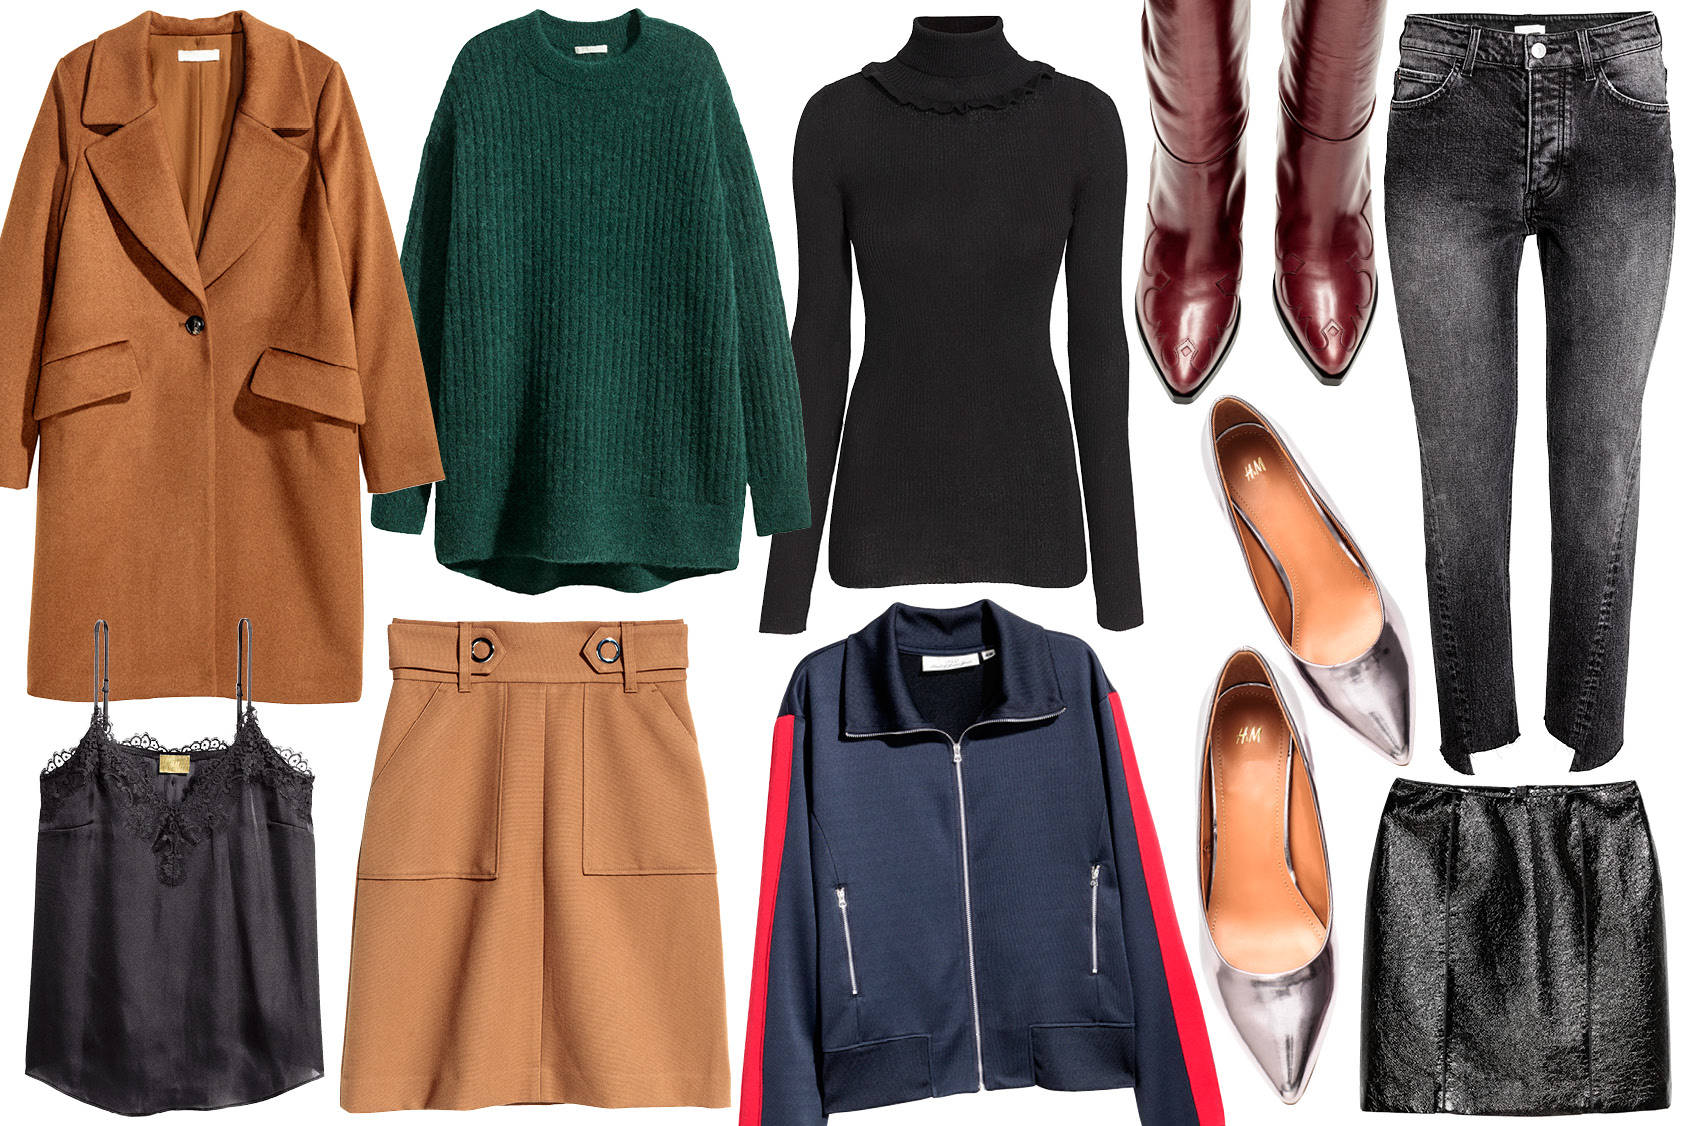 10 FASHION ITEMS YOU NEED THIS FALL